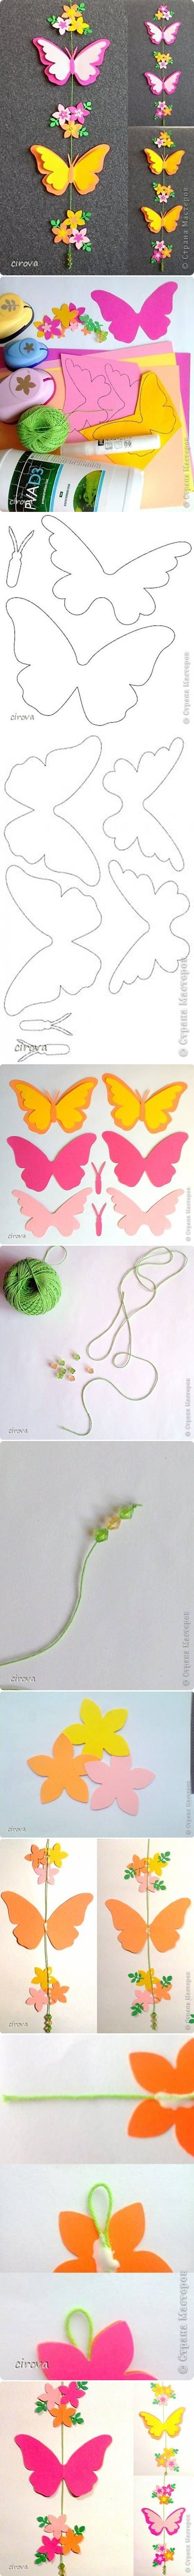 DIY Paper Butterfly Mobile DIY Projects | UsefulDIY.com